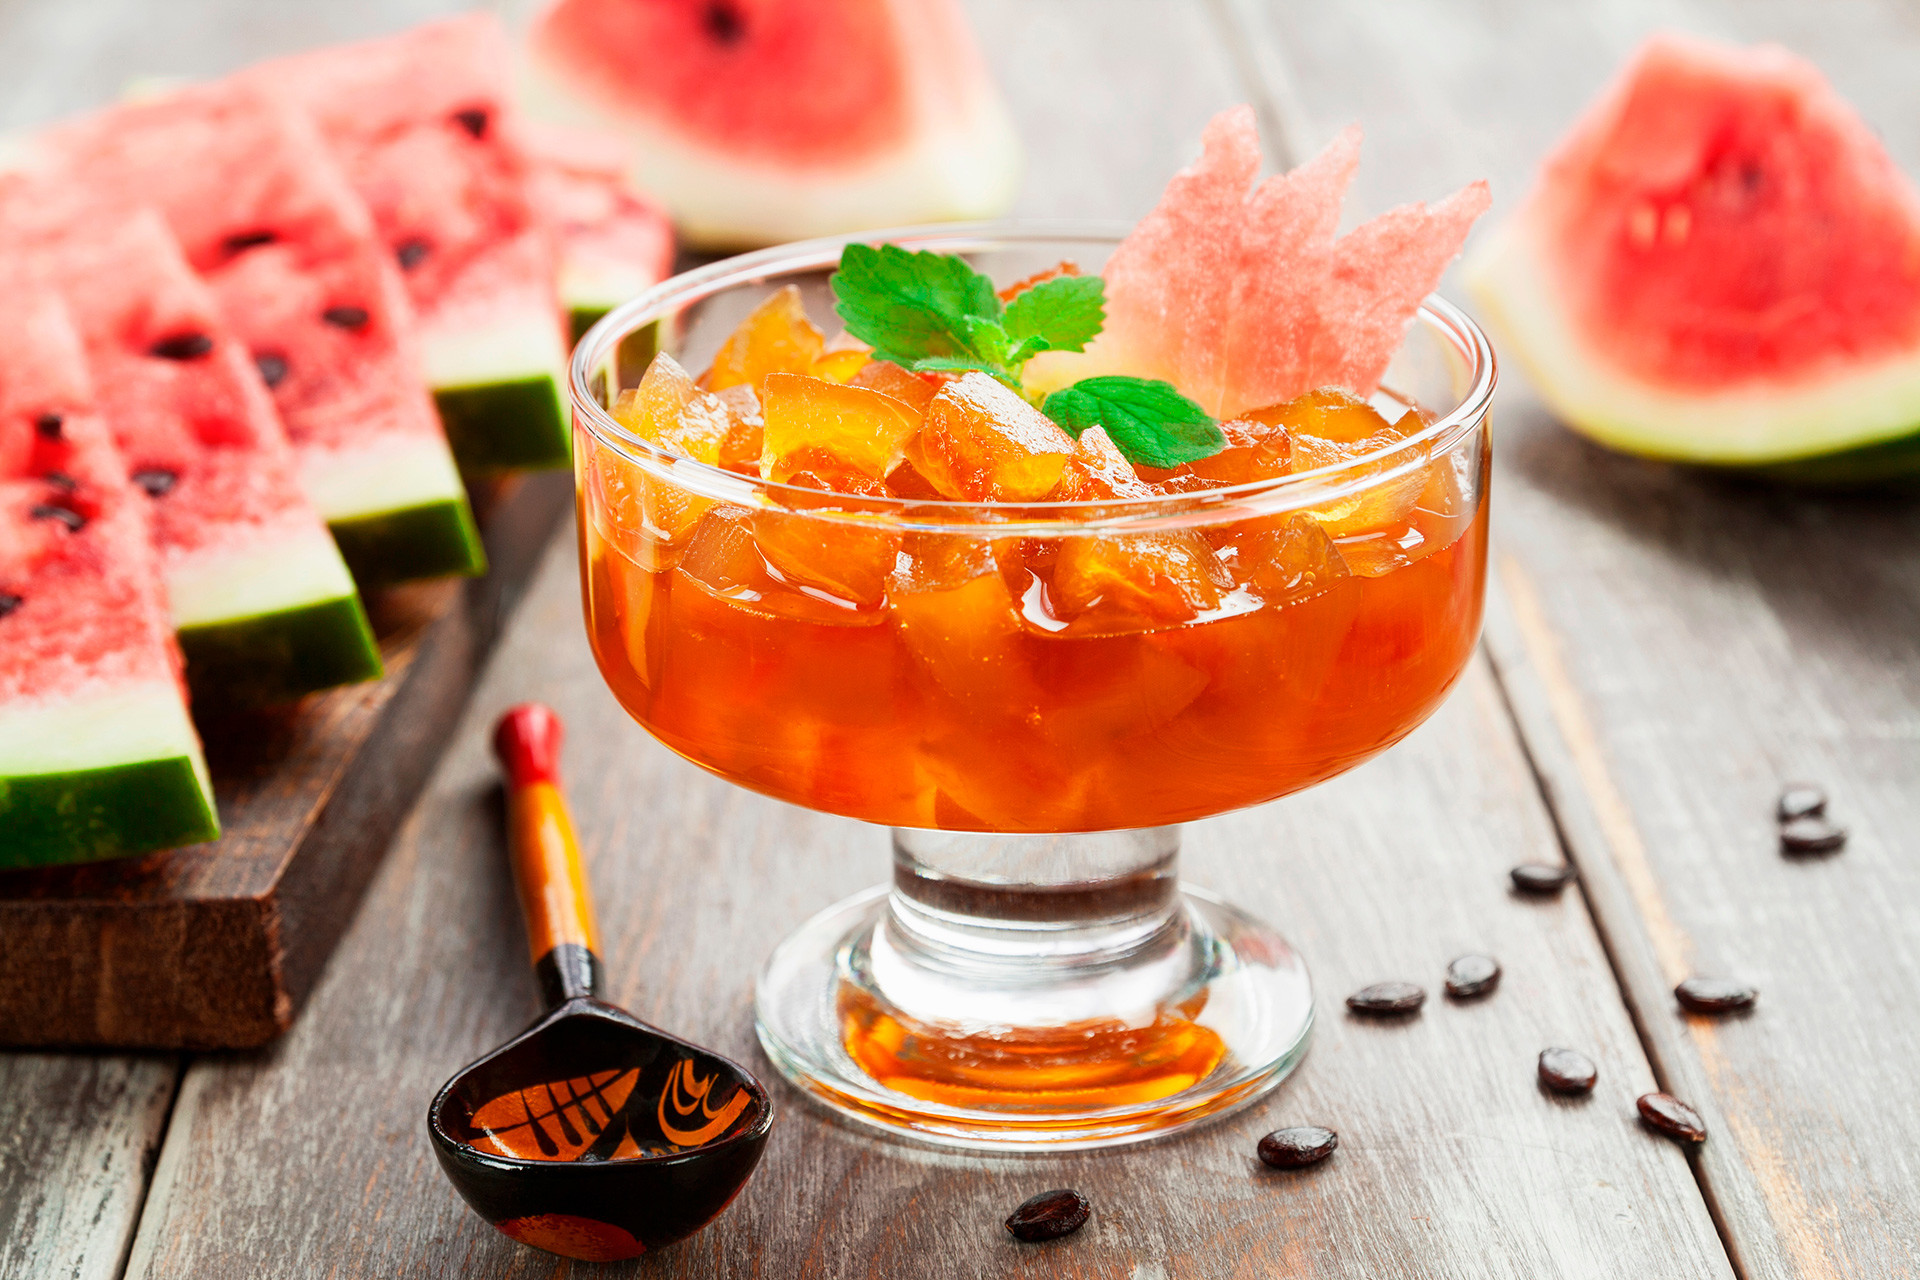 How to make jam from watermelon peels, carrots and cones